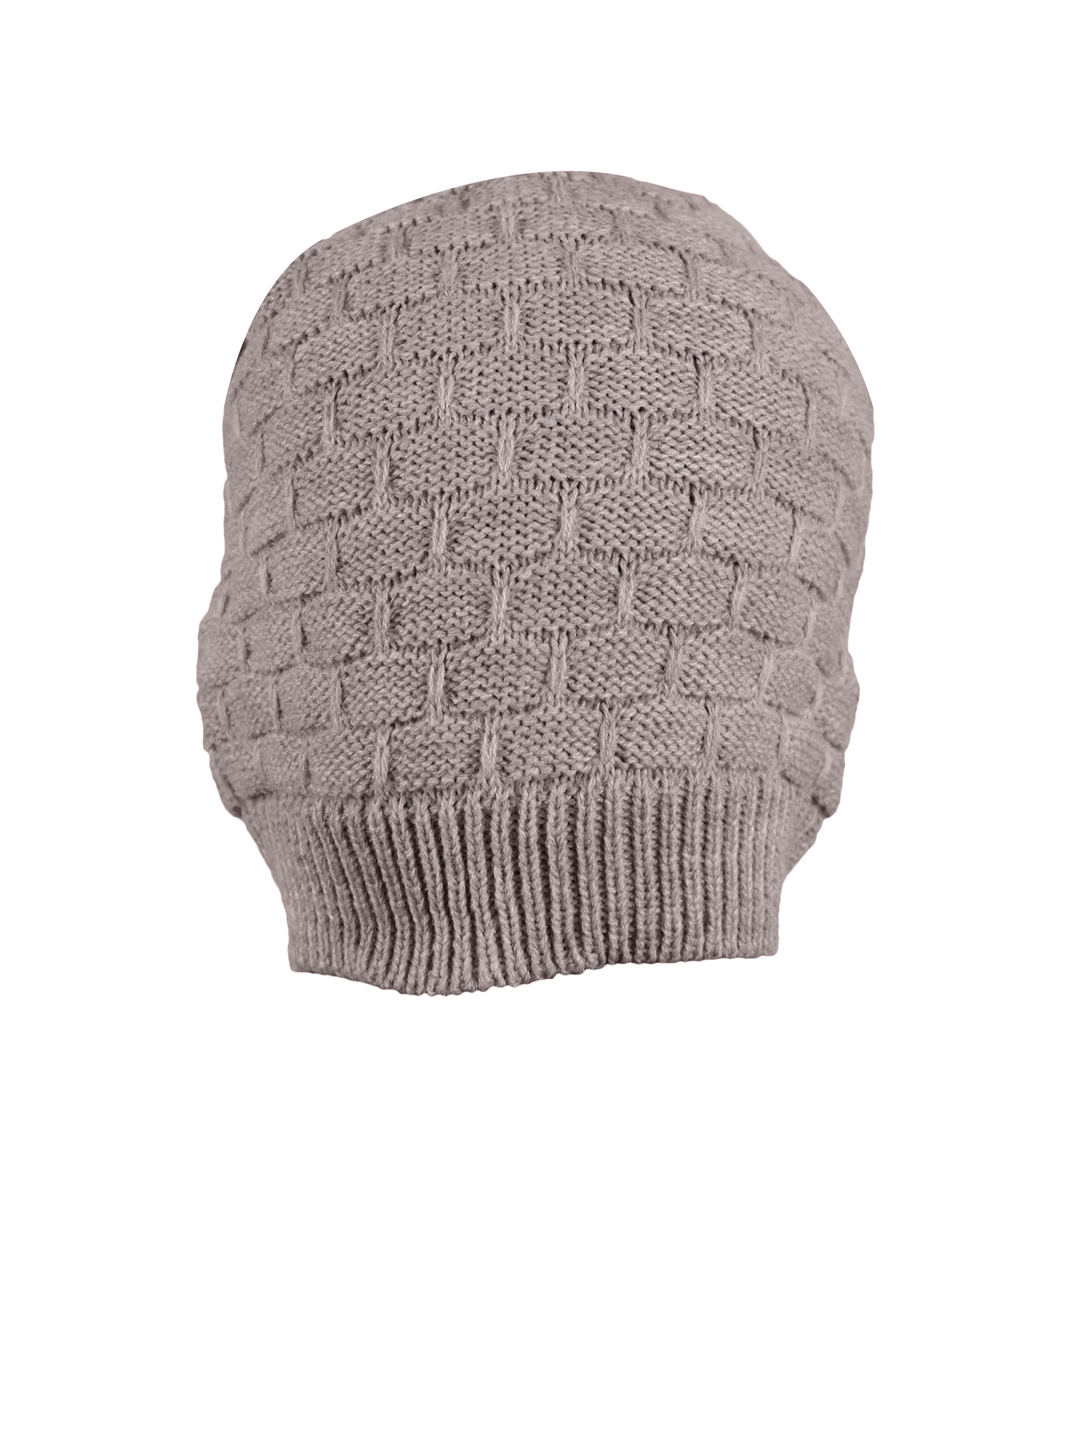 152bec53190b5 Buy FabSeasons Unisex Grey Solid Beanie - Caps for Unisex 2456184 ...